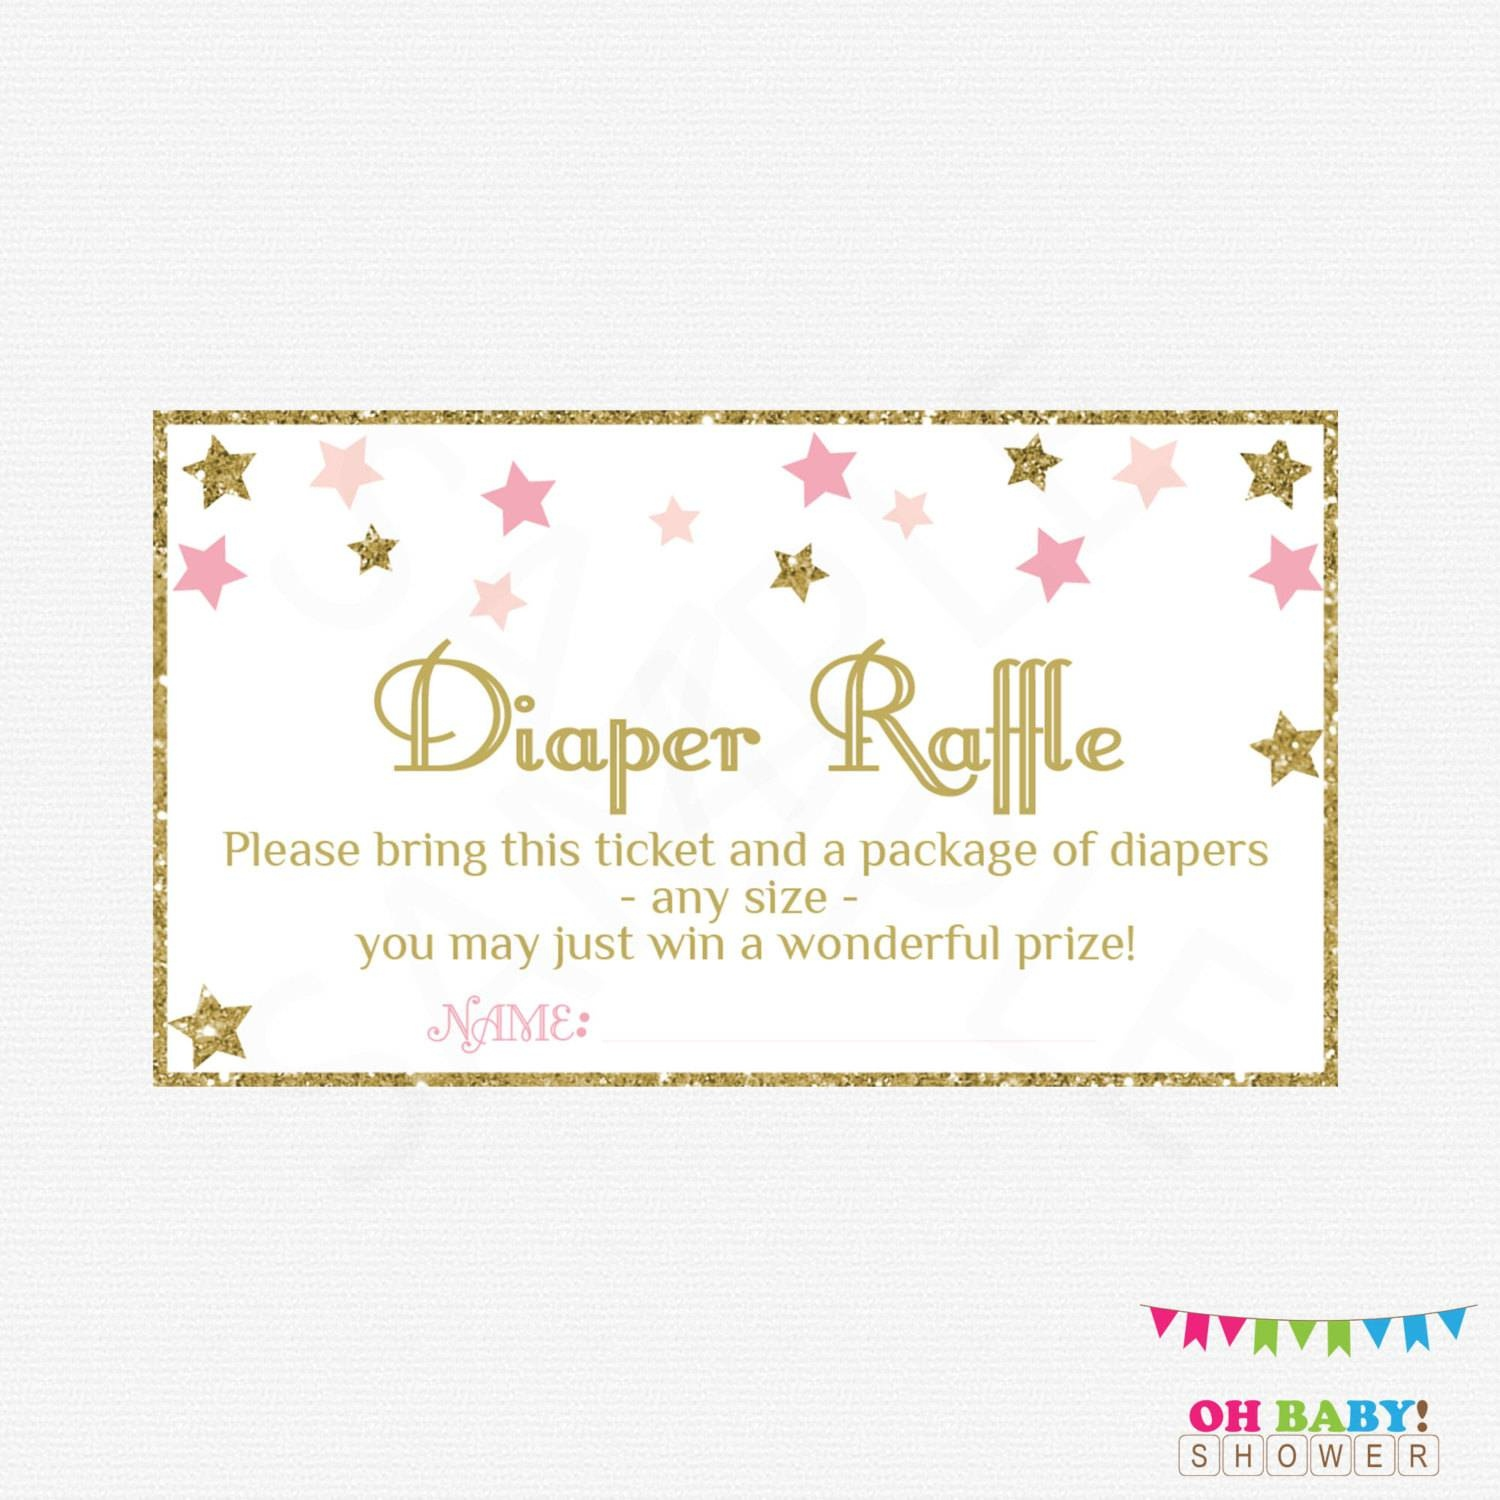 36 Cute Diaper Raffle Tickets | Kittybabylove - Diaper Raffle Free Printable